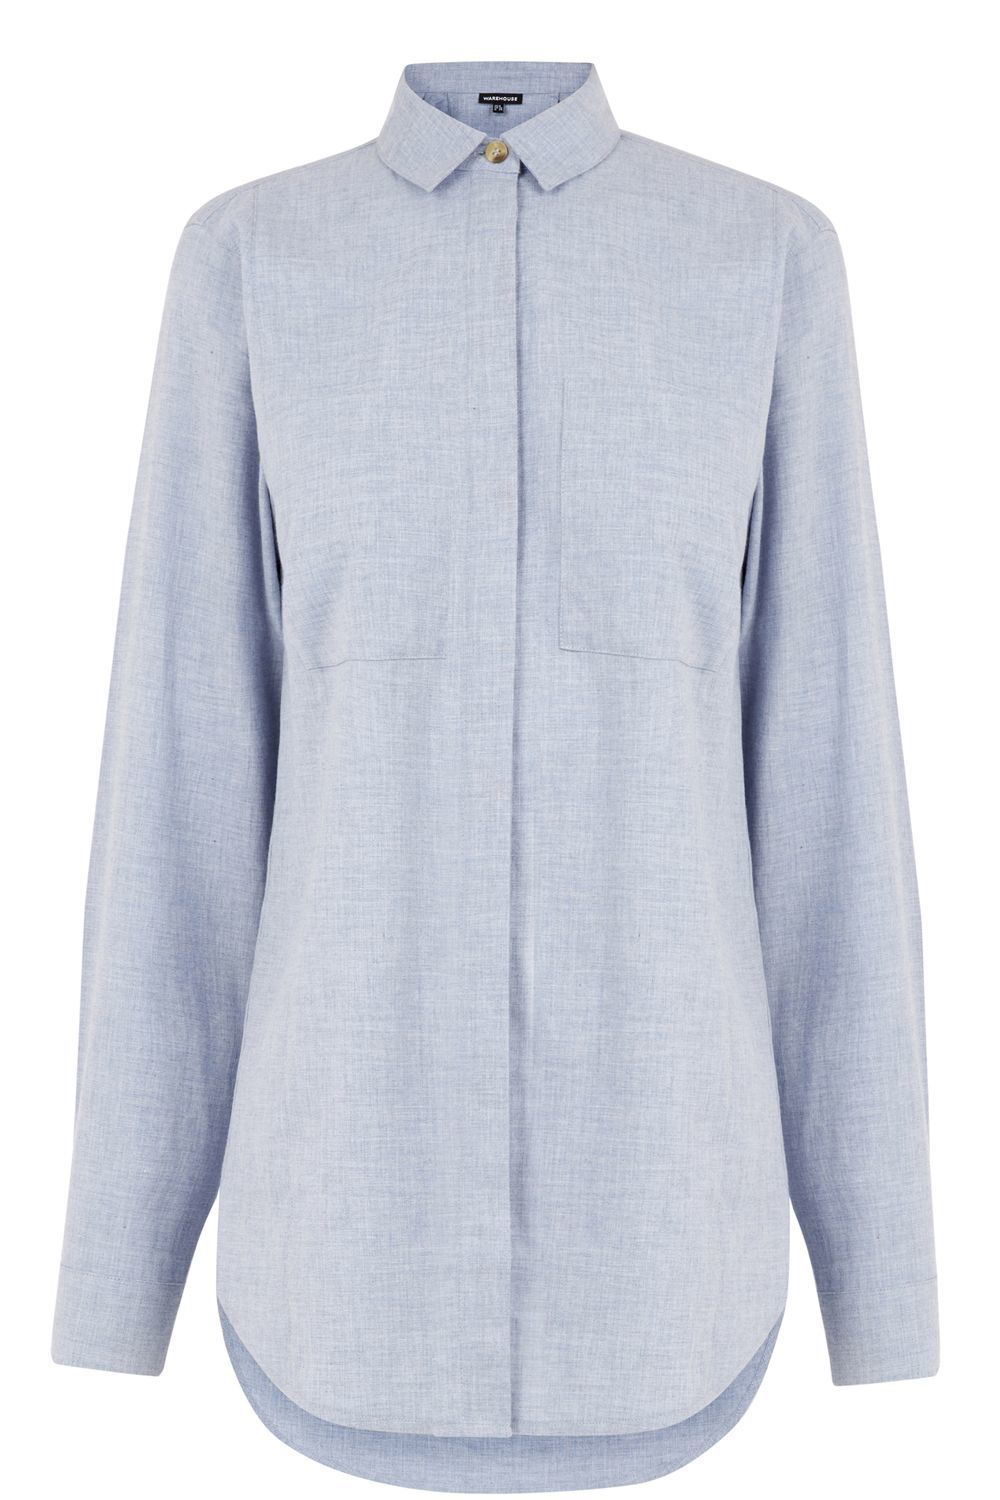 Relaxed Curved Hem Shirt, Blue - neckline: shirt collar/peter pan/zip with opening; pattern: plain; length: below the bottom; style: shirt; predominant colour: pale blue; occasions: casual, creative work; fibres: cotton - 100%; fit: loose; sleeve length: long sleeve; sleeve style: standard; texture group: cotton feel fabrics; bust detail: bulky details at bust; pattern type: fabric; season: s/s 2016; wardrobe: highlight